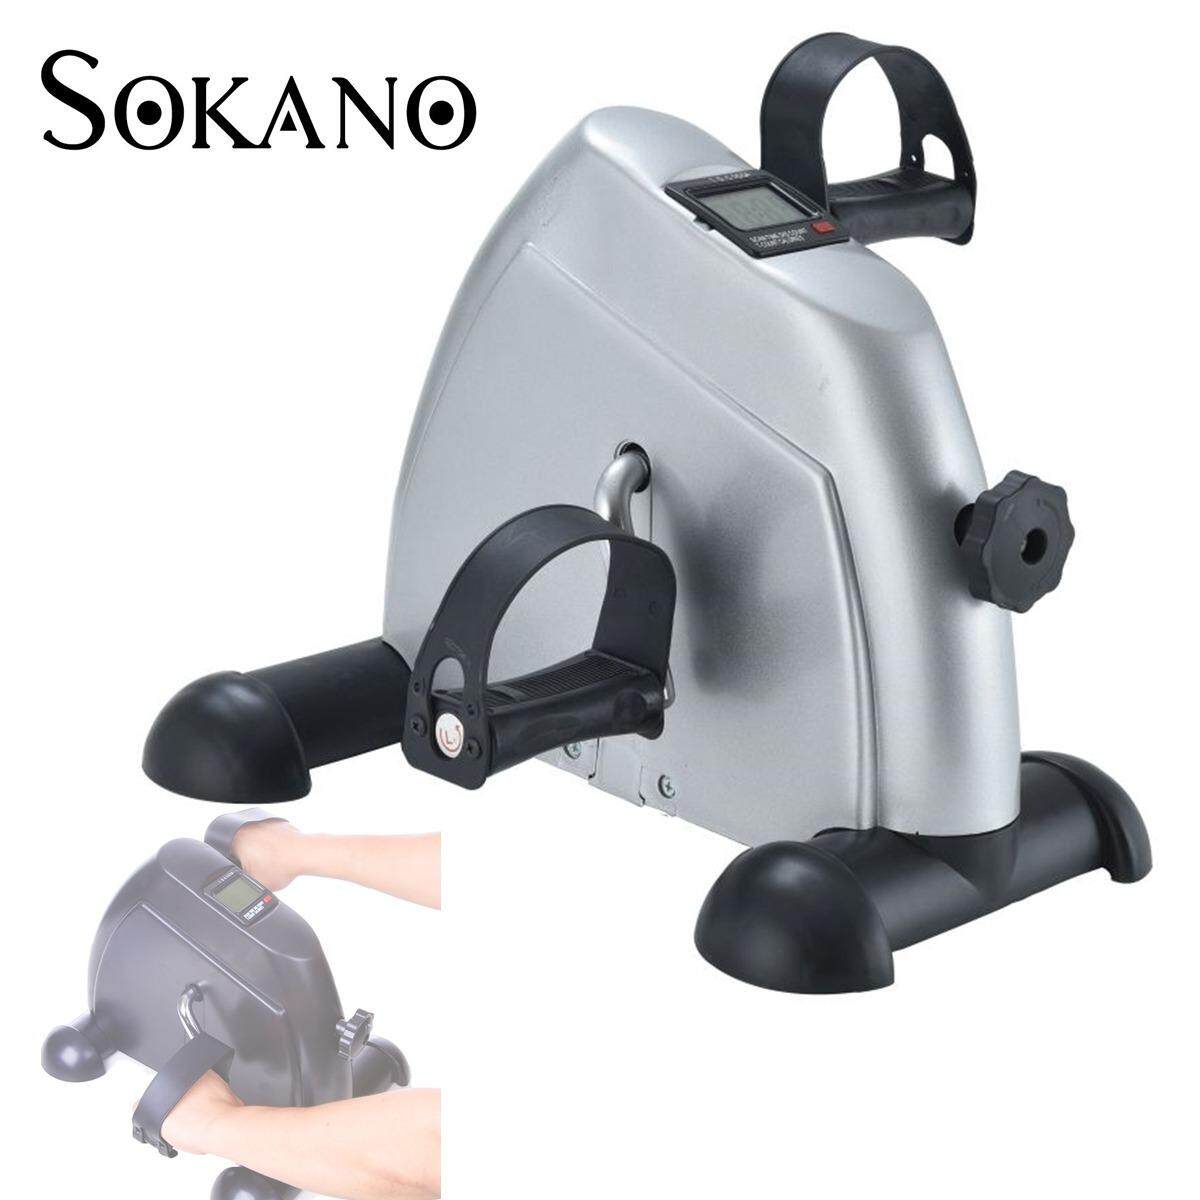 Sokano Exercise JS6001 Mini Bike Machine With Digital Calories Counter Basikal Lanjak